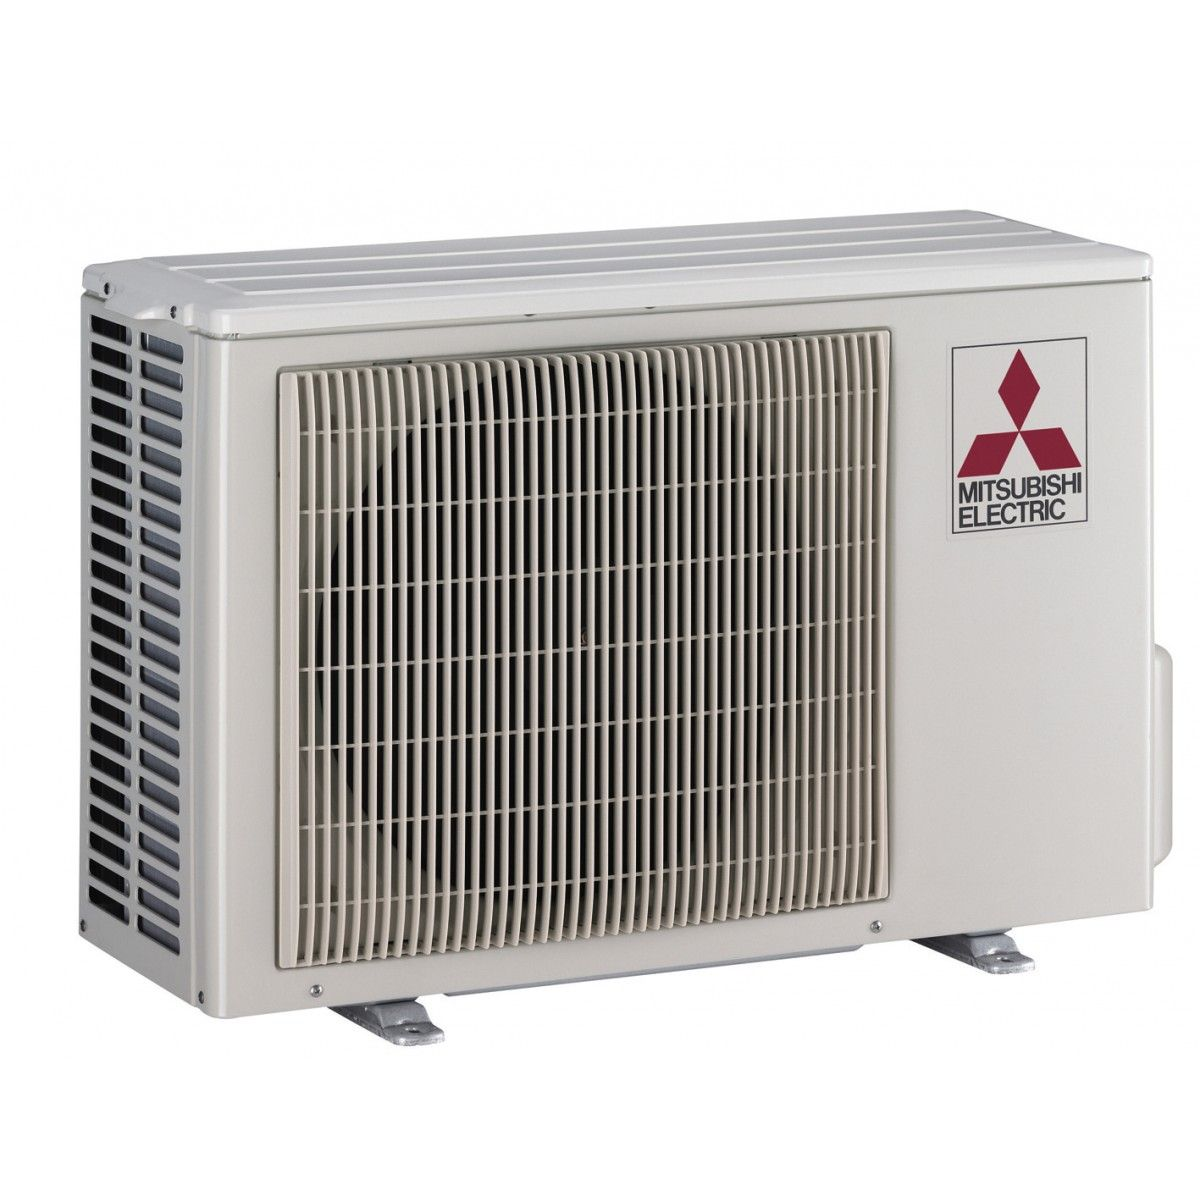 12k btu mitsubishi muygl air conditioner outdoor unit in outdoor units ductless ac components. Black Bedroom Furniture Sets. Home Design Ideas